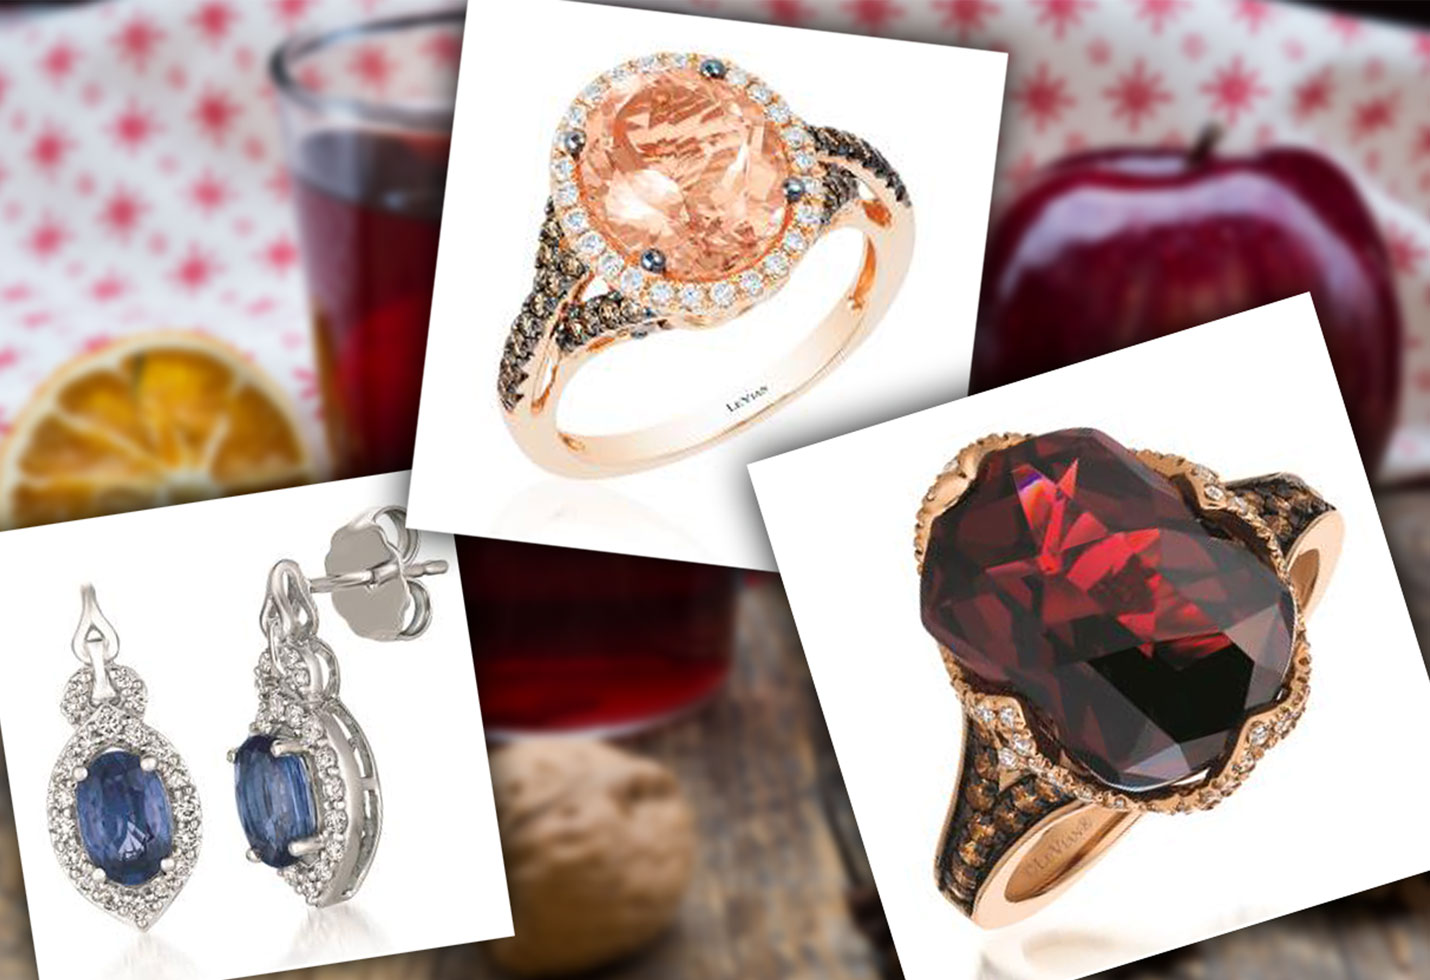 Le vian holiday cocktails star pp